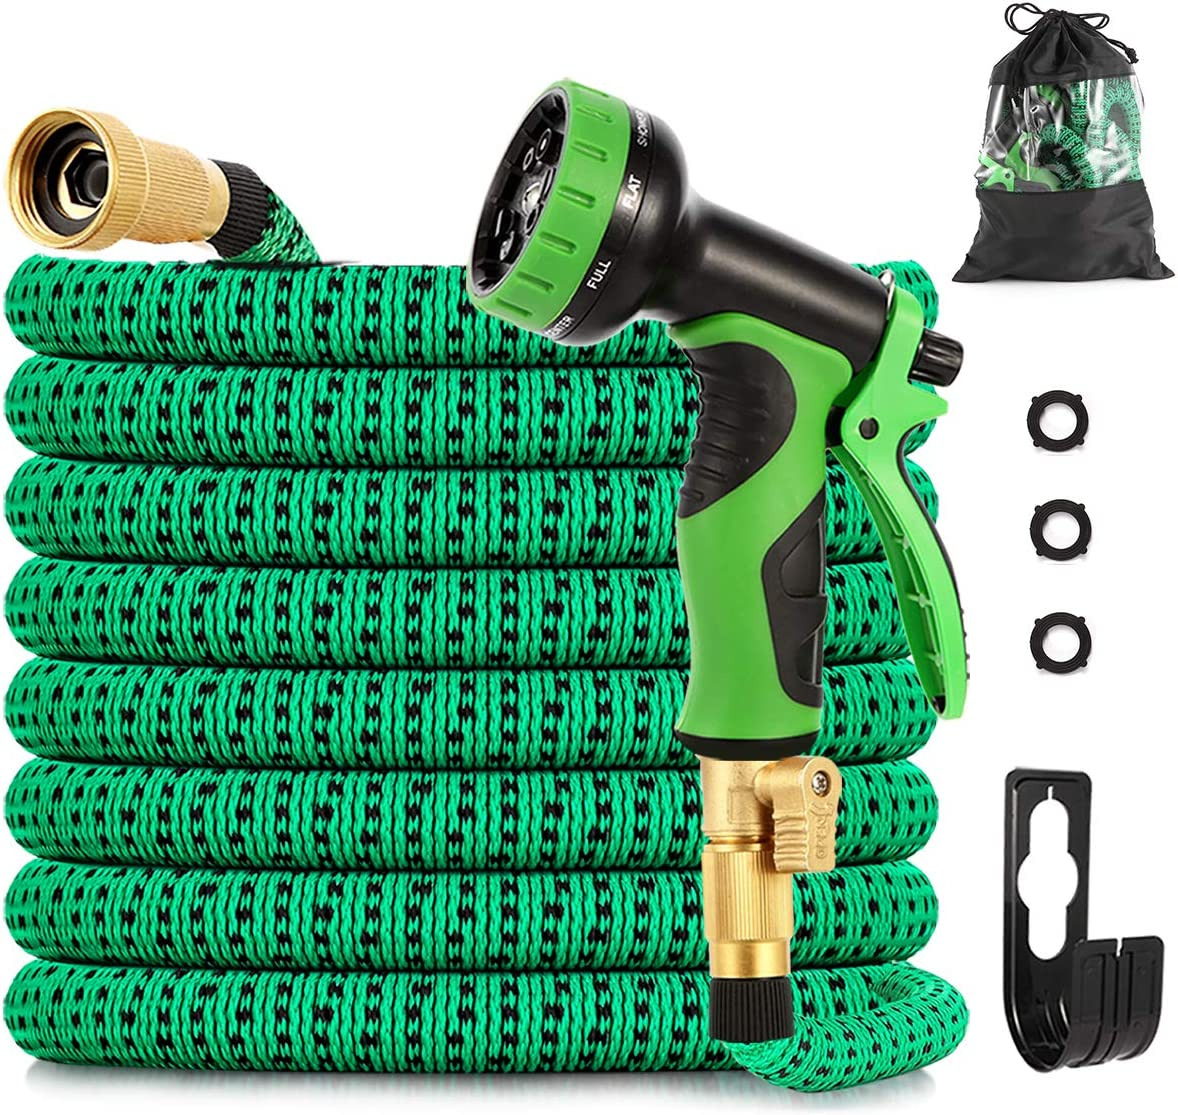 Watato Expandable Garden Hose 50ft-Durable Flexible Water Hose with 9-Way Spray Nozzle and 4 Layers Latex-3/4 inch Solid Brass Fittings-Strength 3750D No Kink Lightweight Outdoor Expanding Hose Pipe